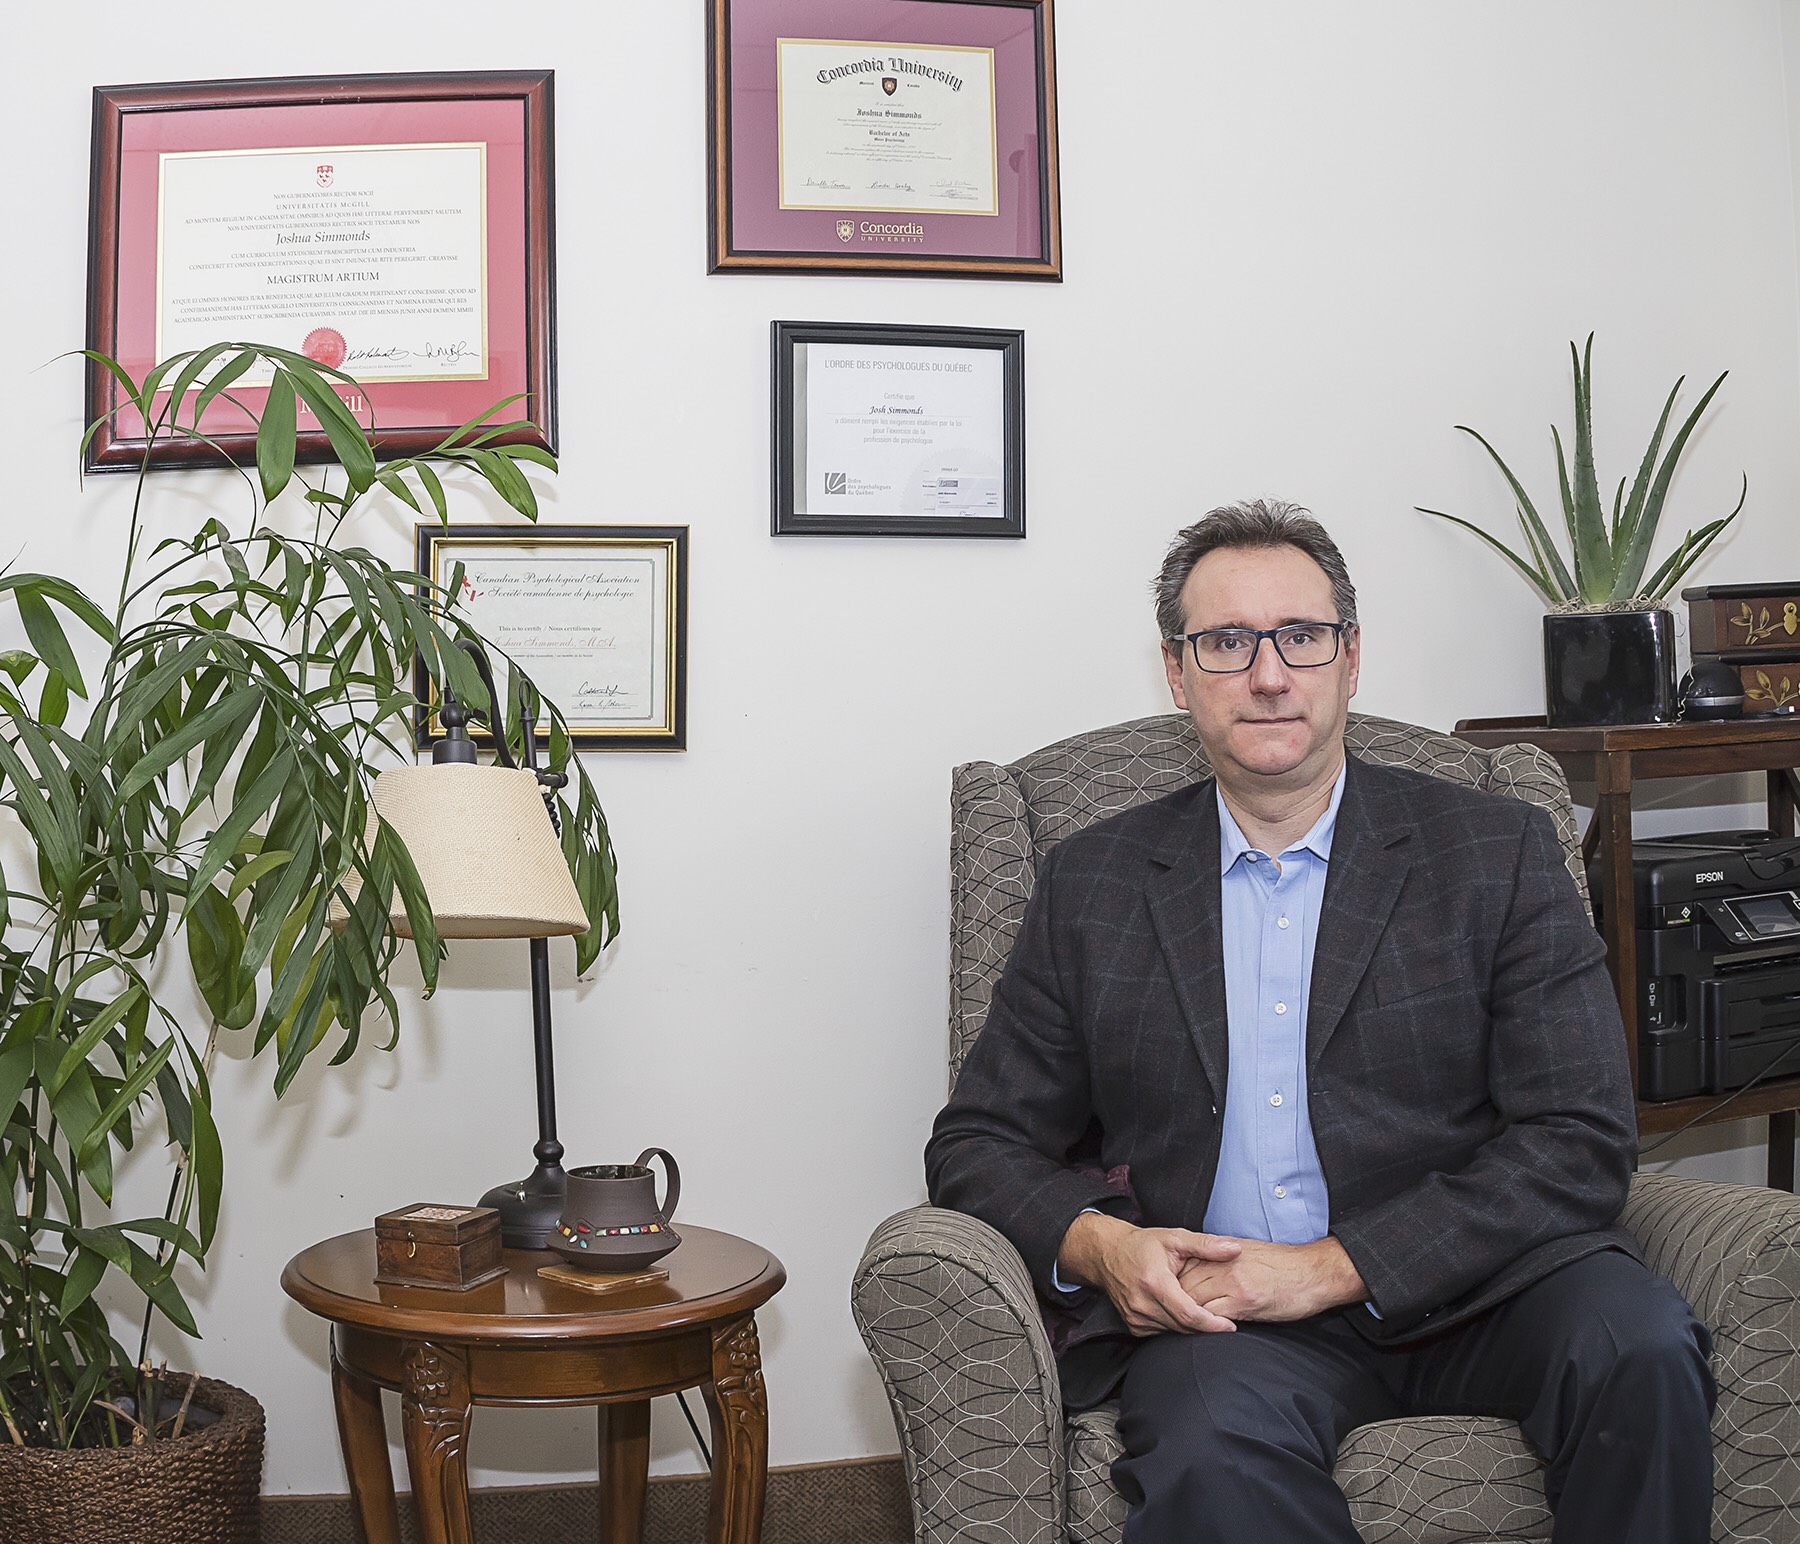 Joshua Simmonds, wearing a suit, sits in a chair in his office. There are certificates on the wall and plants and a coffee table beside him.